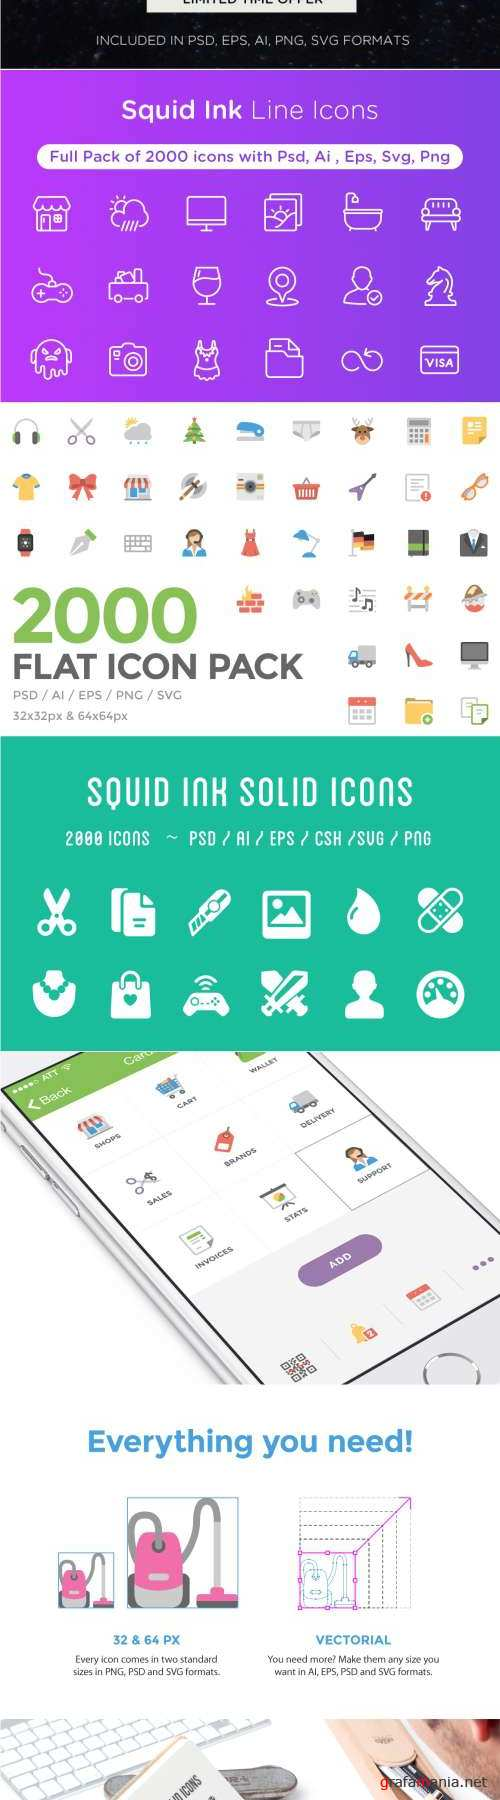 Awesome Icons Bundle | 6000 Icons 442434